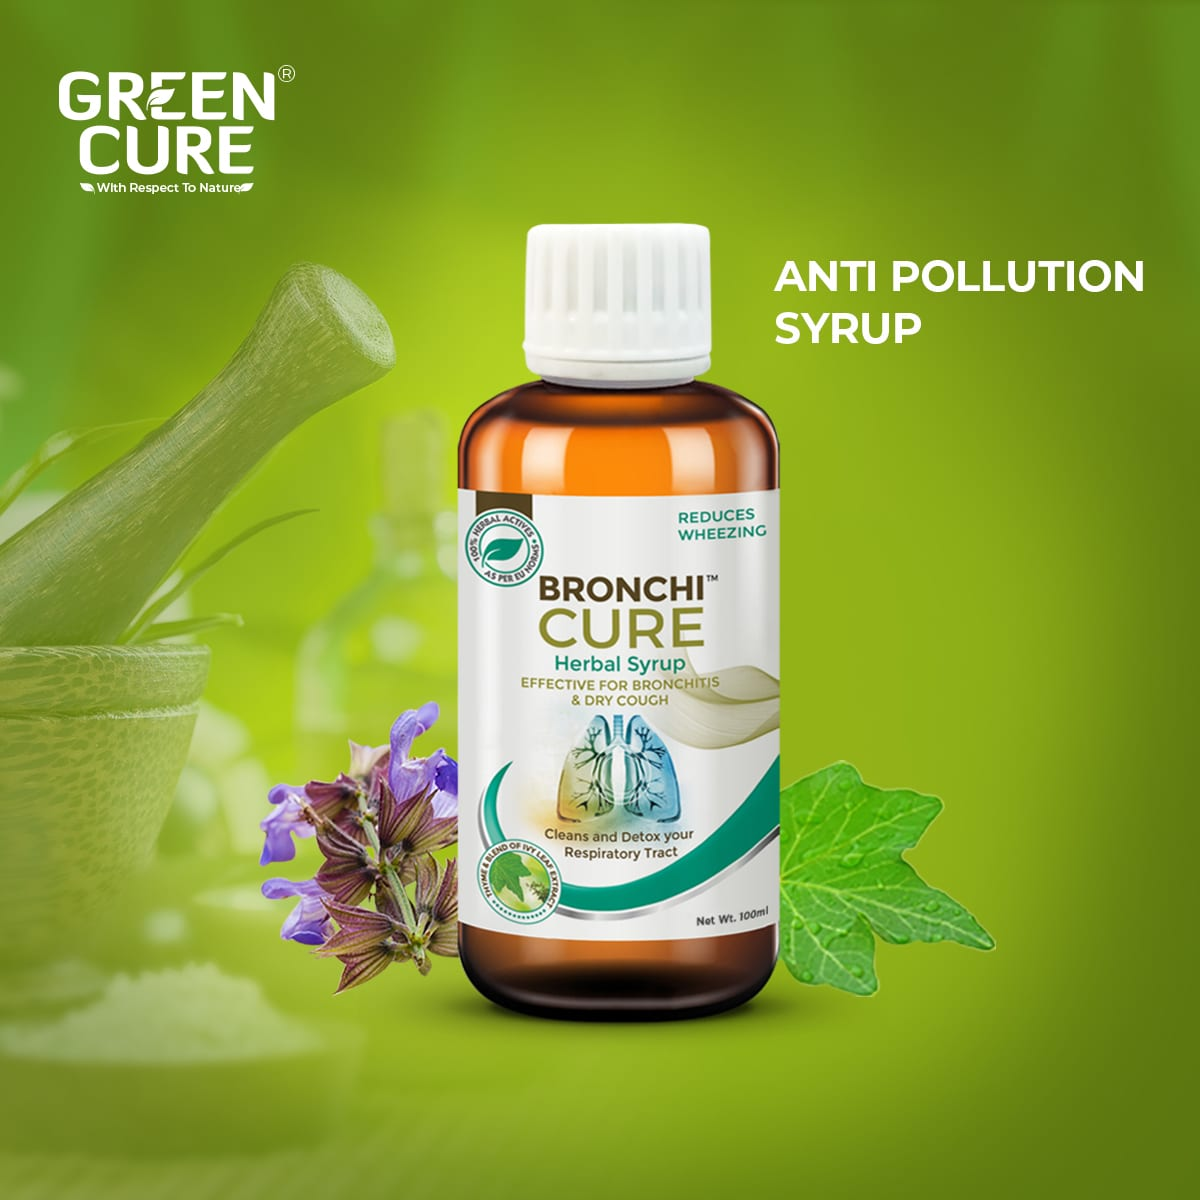 Bronchicure - THE ANTI POLLUTION SYRUP